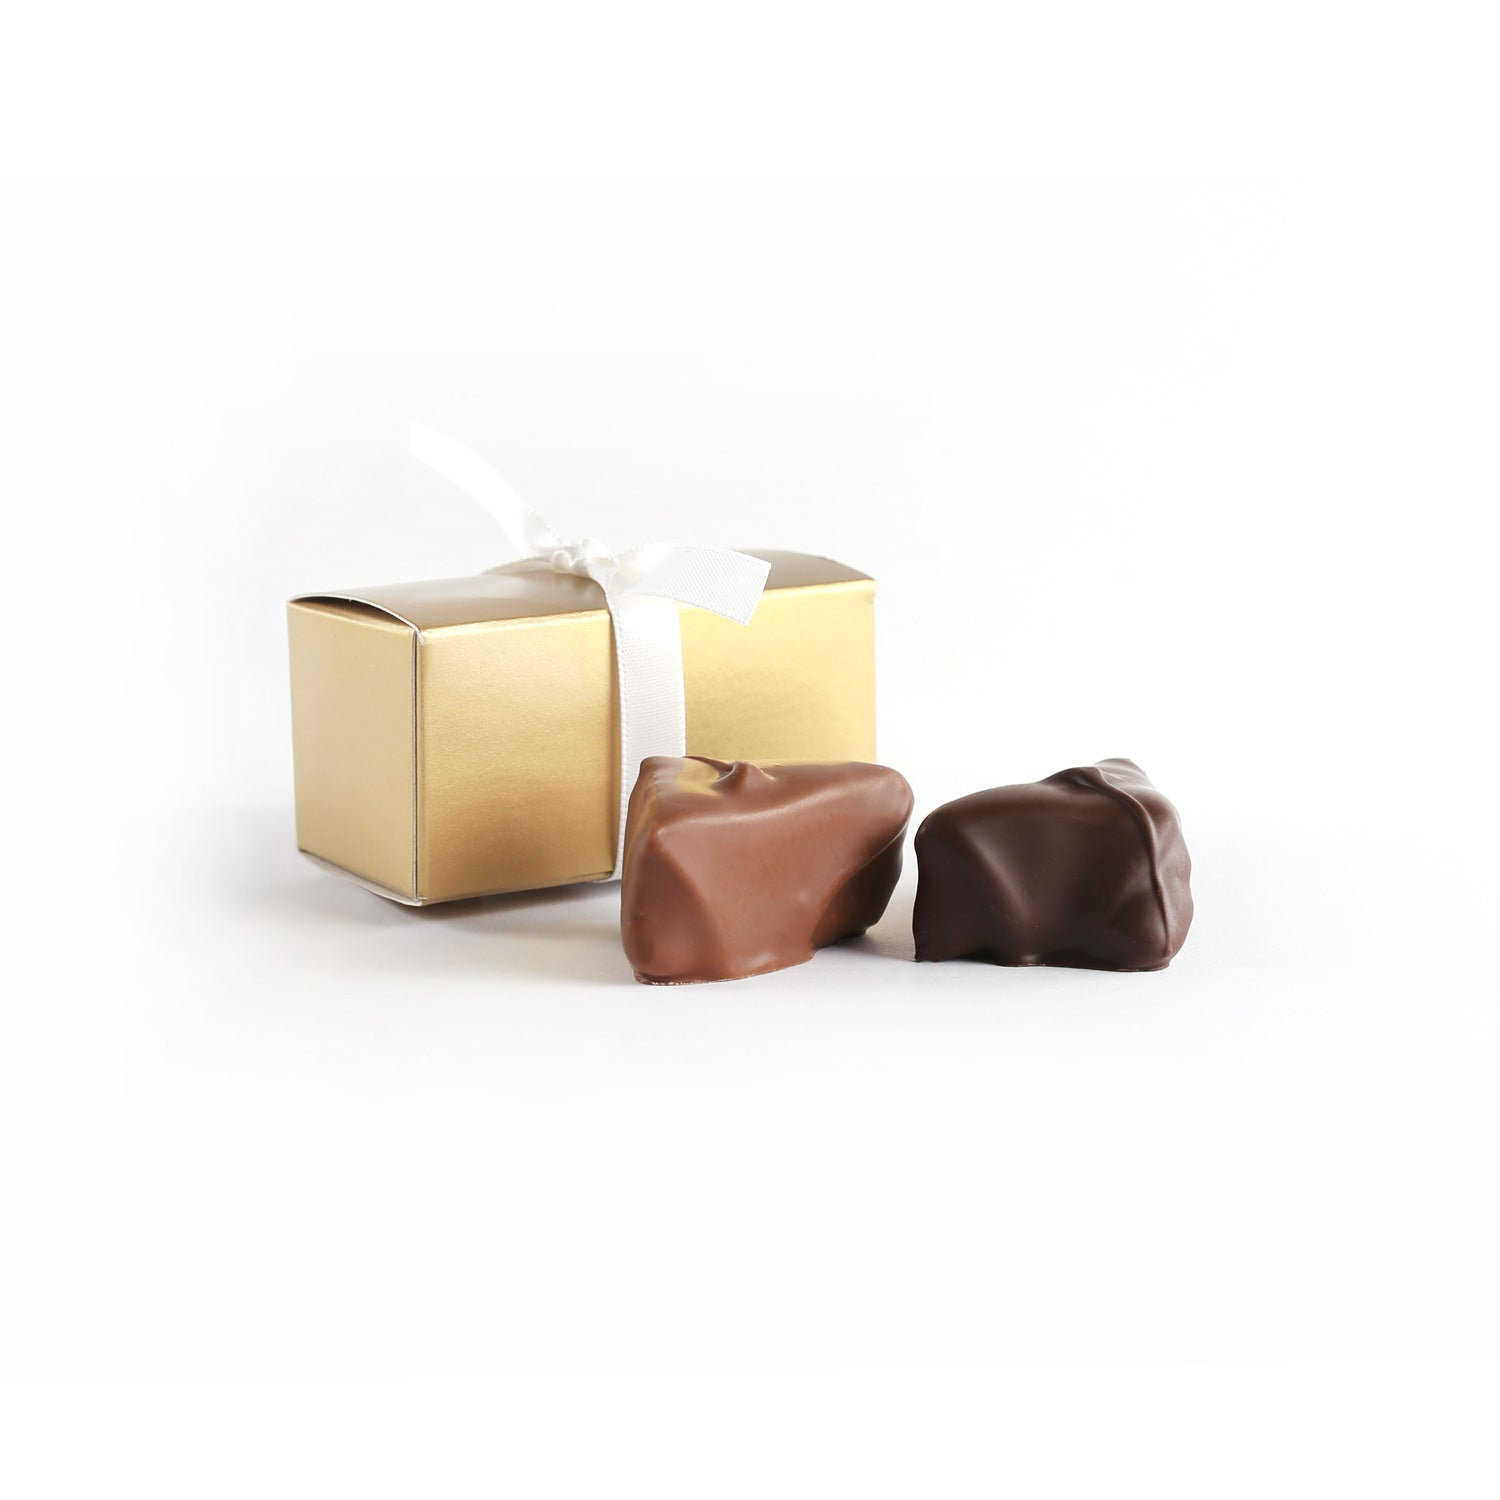 Product photo of two chocolate truffle box with ribbon